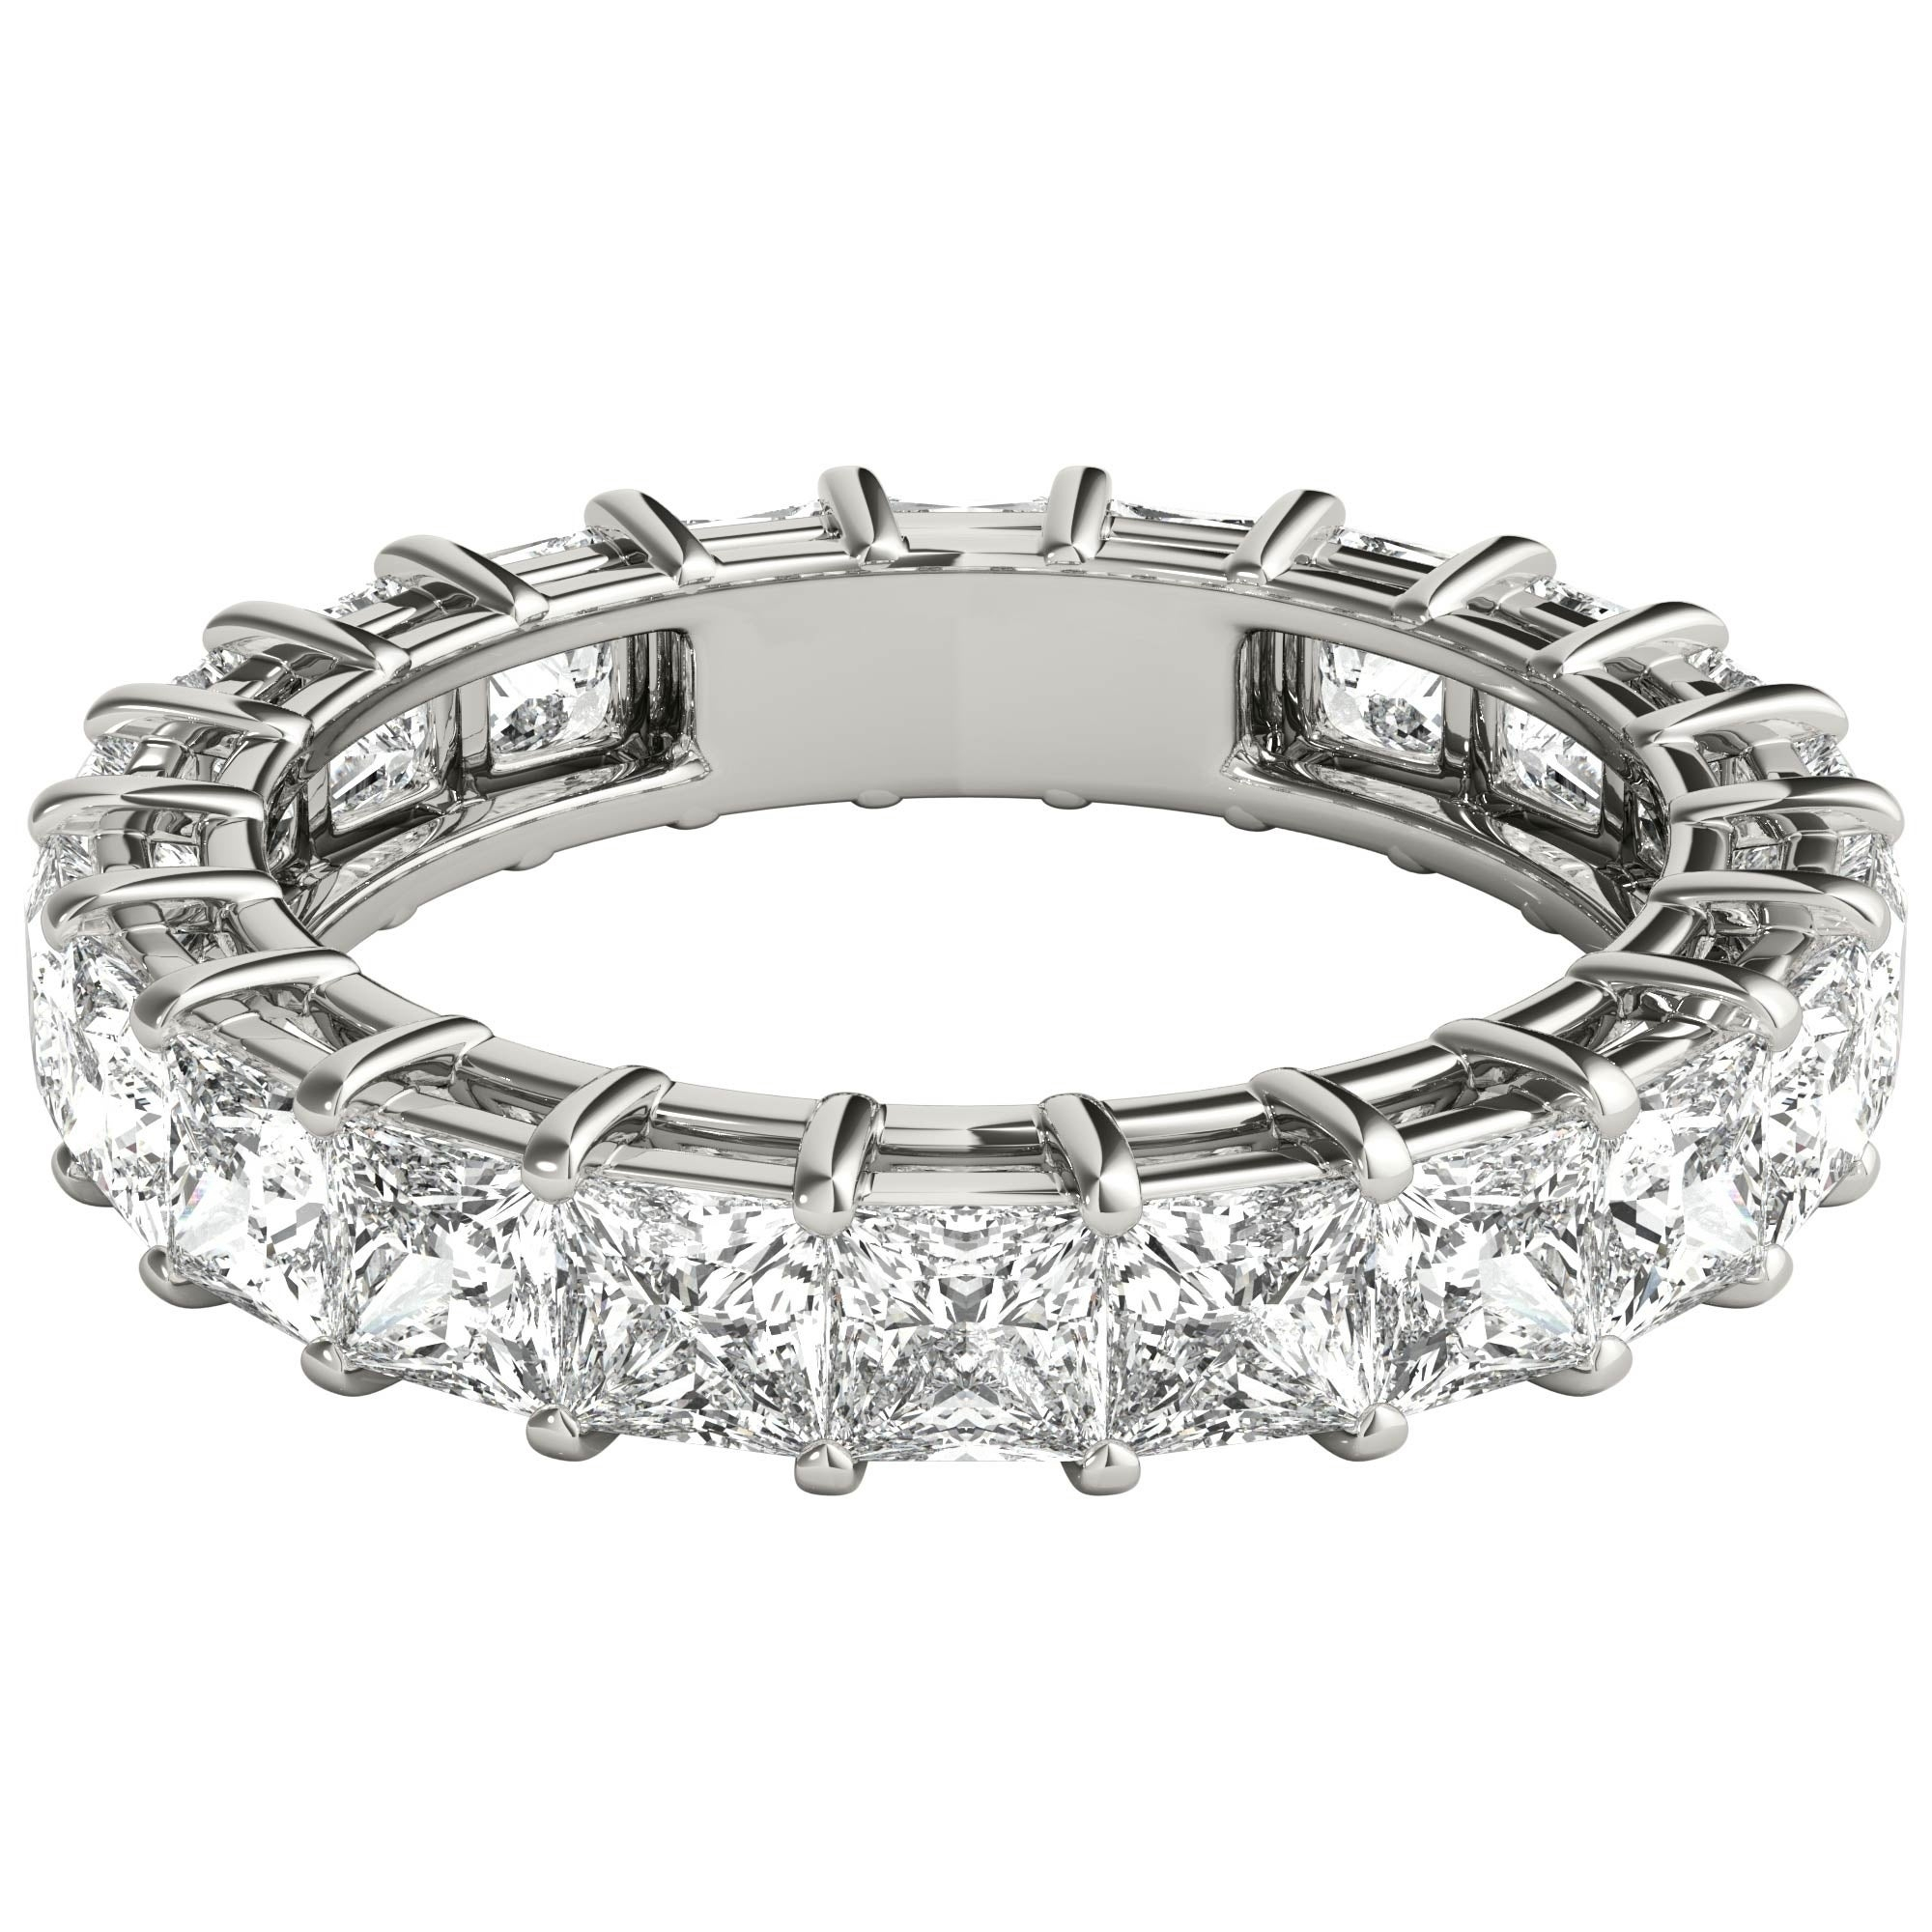 Seraphina 18K White Gold 5 1/2Ct Tdw Princess Diamond Eternity Ring With Regard To 2019 Celebration Ideal 1Diamond Five Stone Anniversary Bands In White Gold (View 20 of 25)